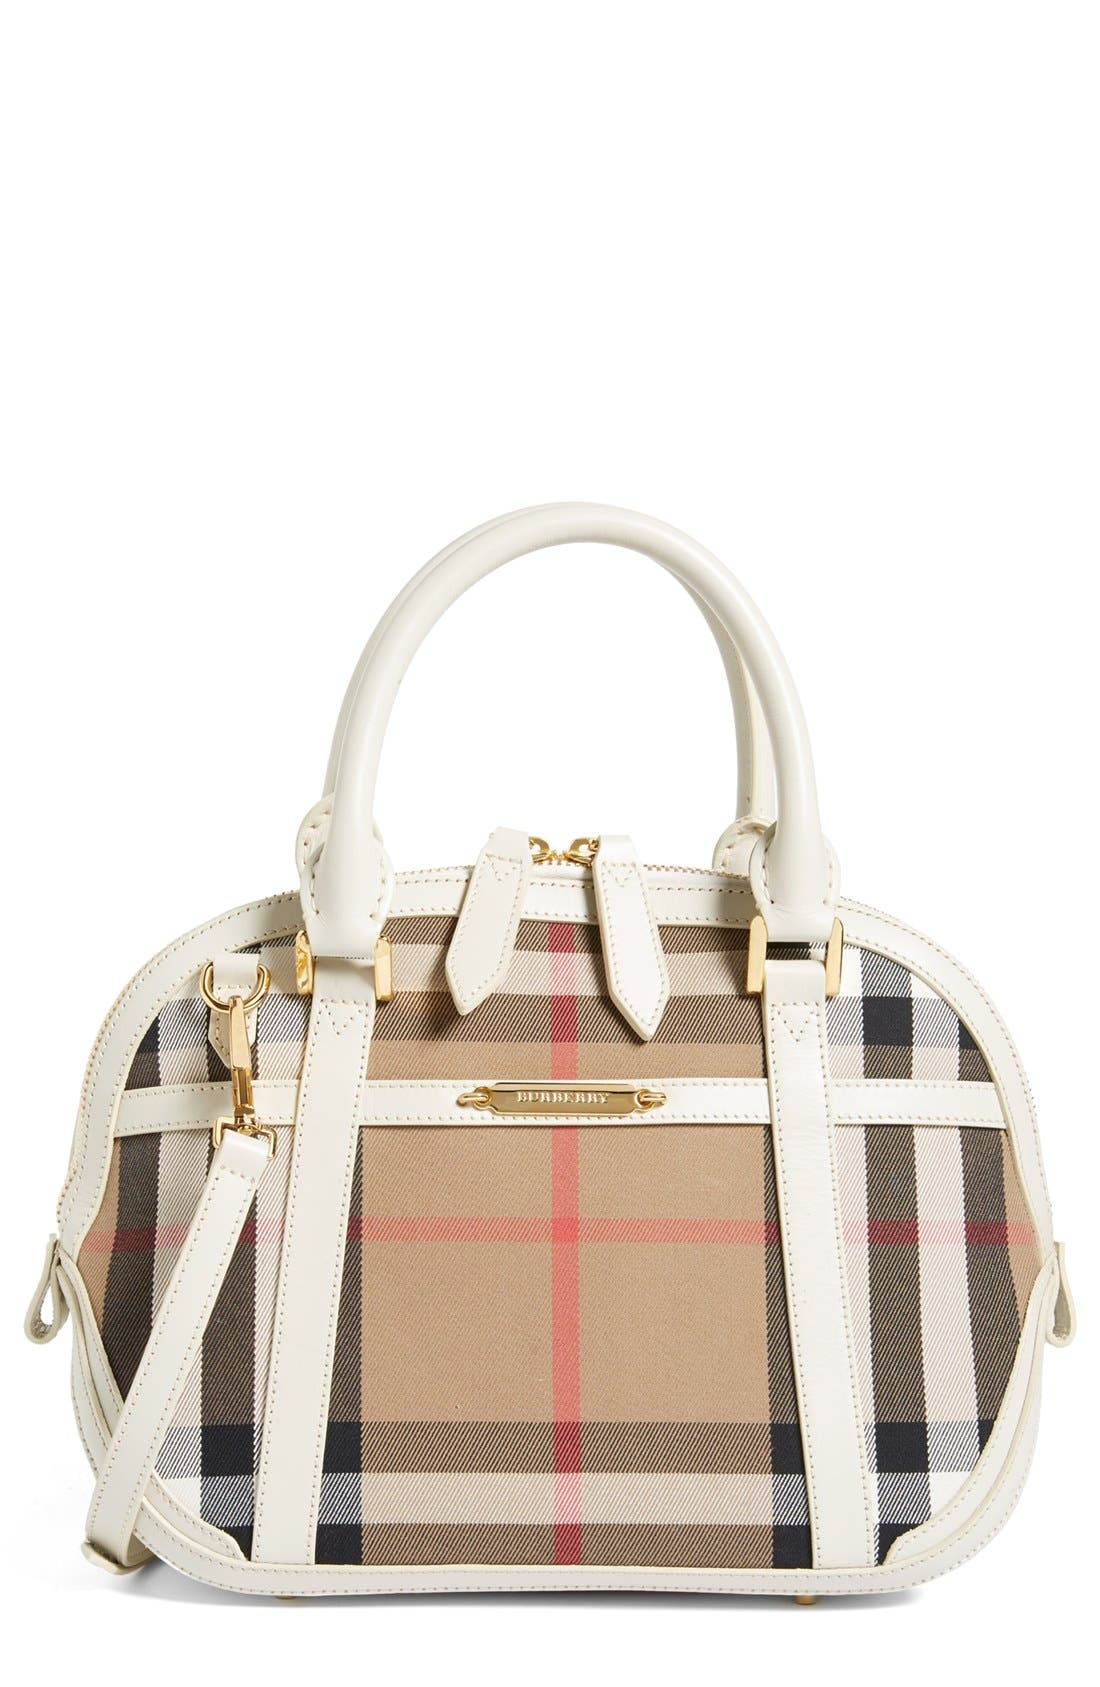 Alternate Image 1 Selected - Burberry 'Small Orchard' Satchel